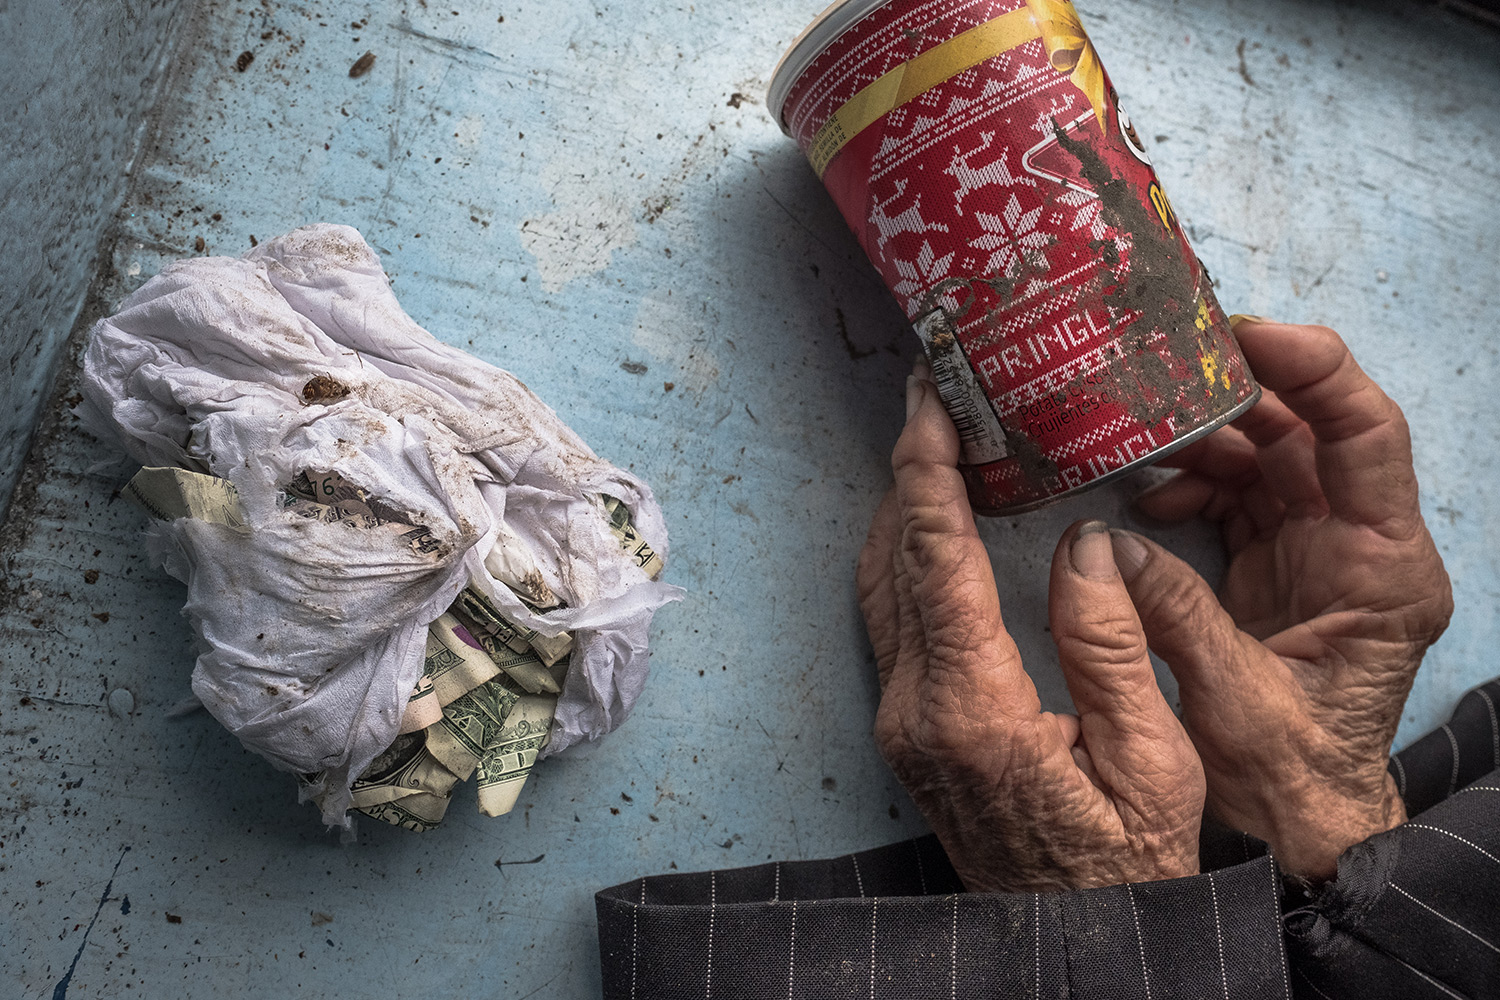 Lee Ann collects and keeps garbage — seen with Kleenex and money, topped by a dead cockroach, three defining elements in her life.